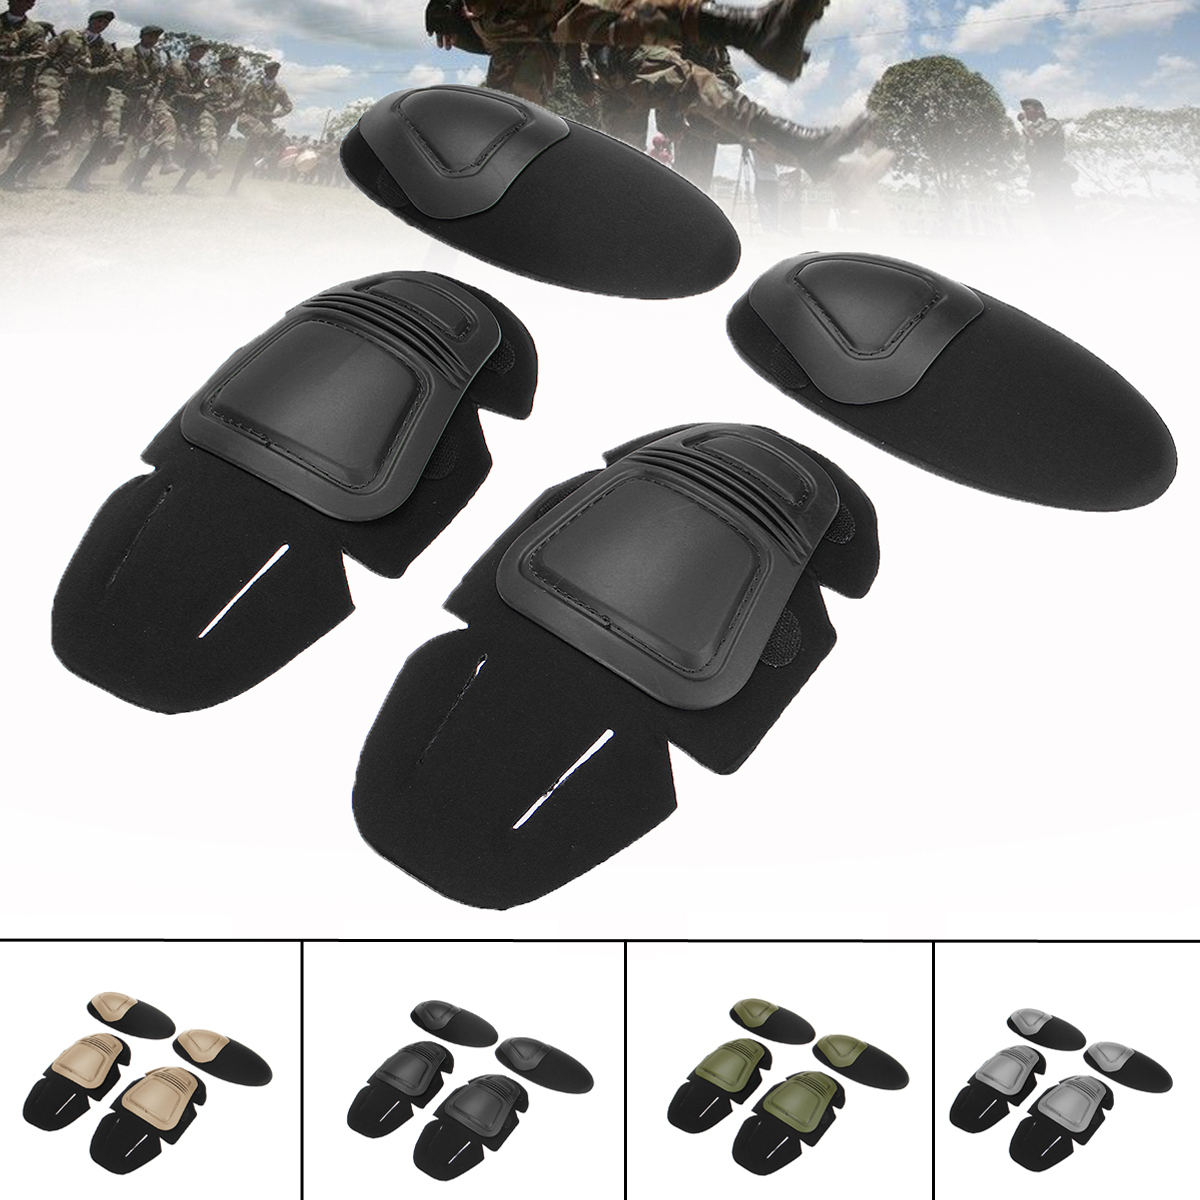 все цены на Military Tactical Knee and Elbow Protector Pad Combat Uniform Set Insert Protective Gear Knee Elbow Pads